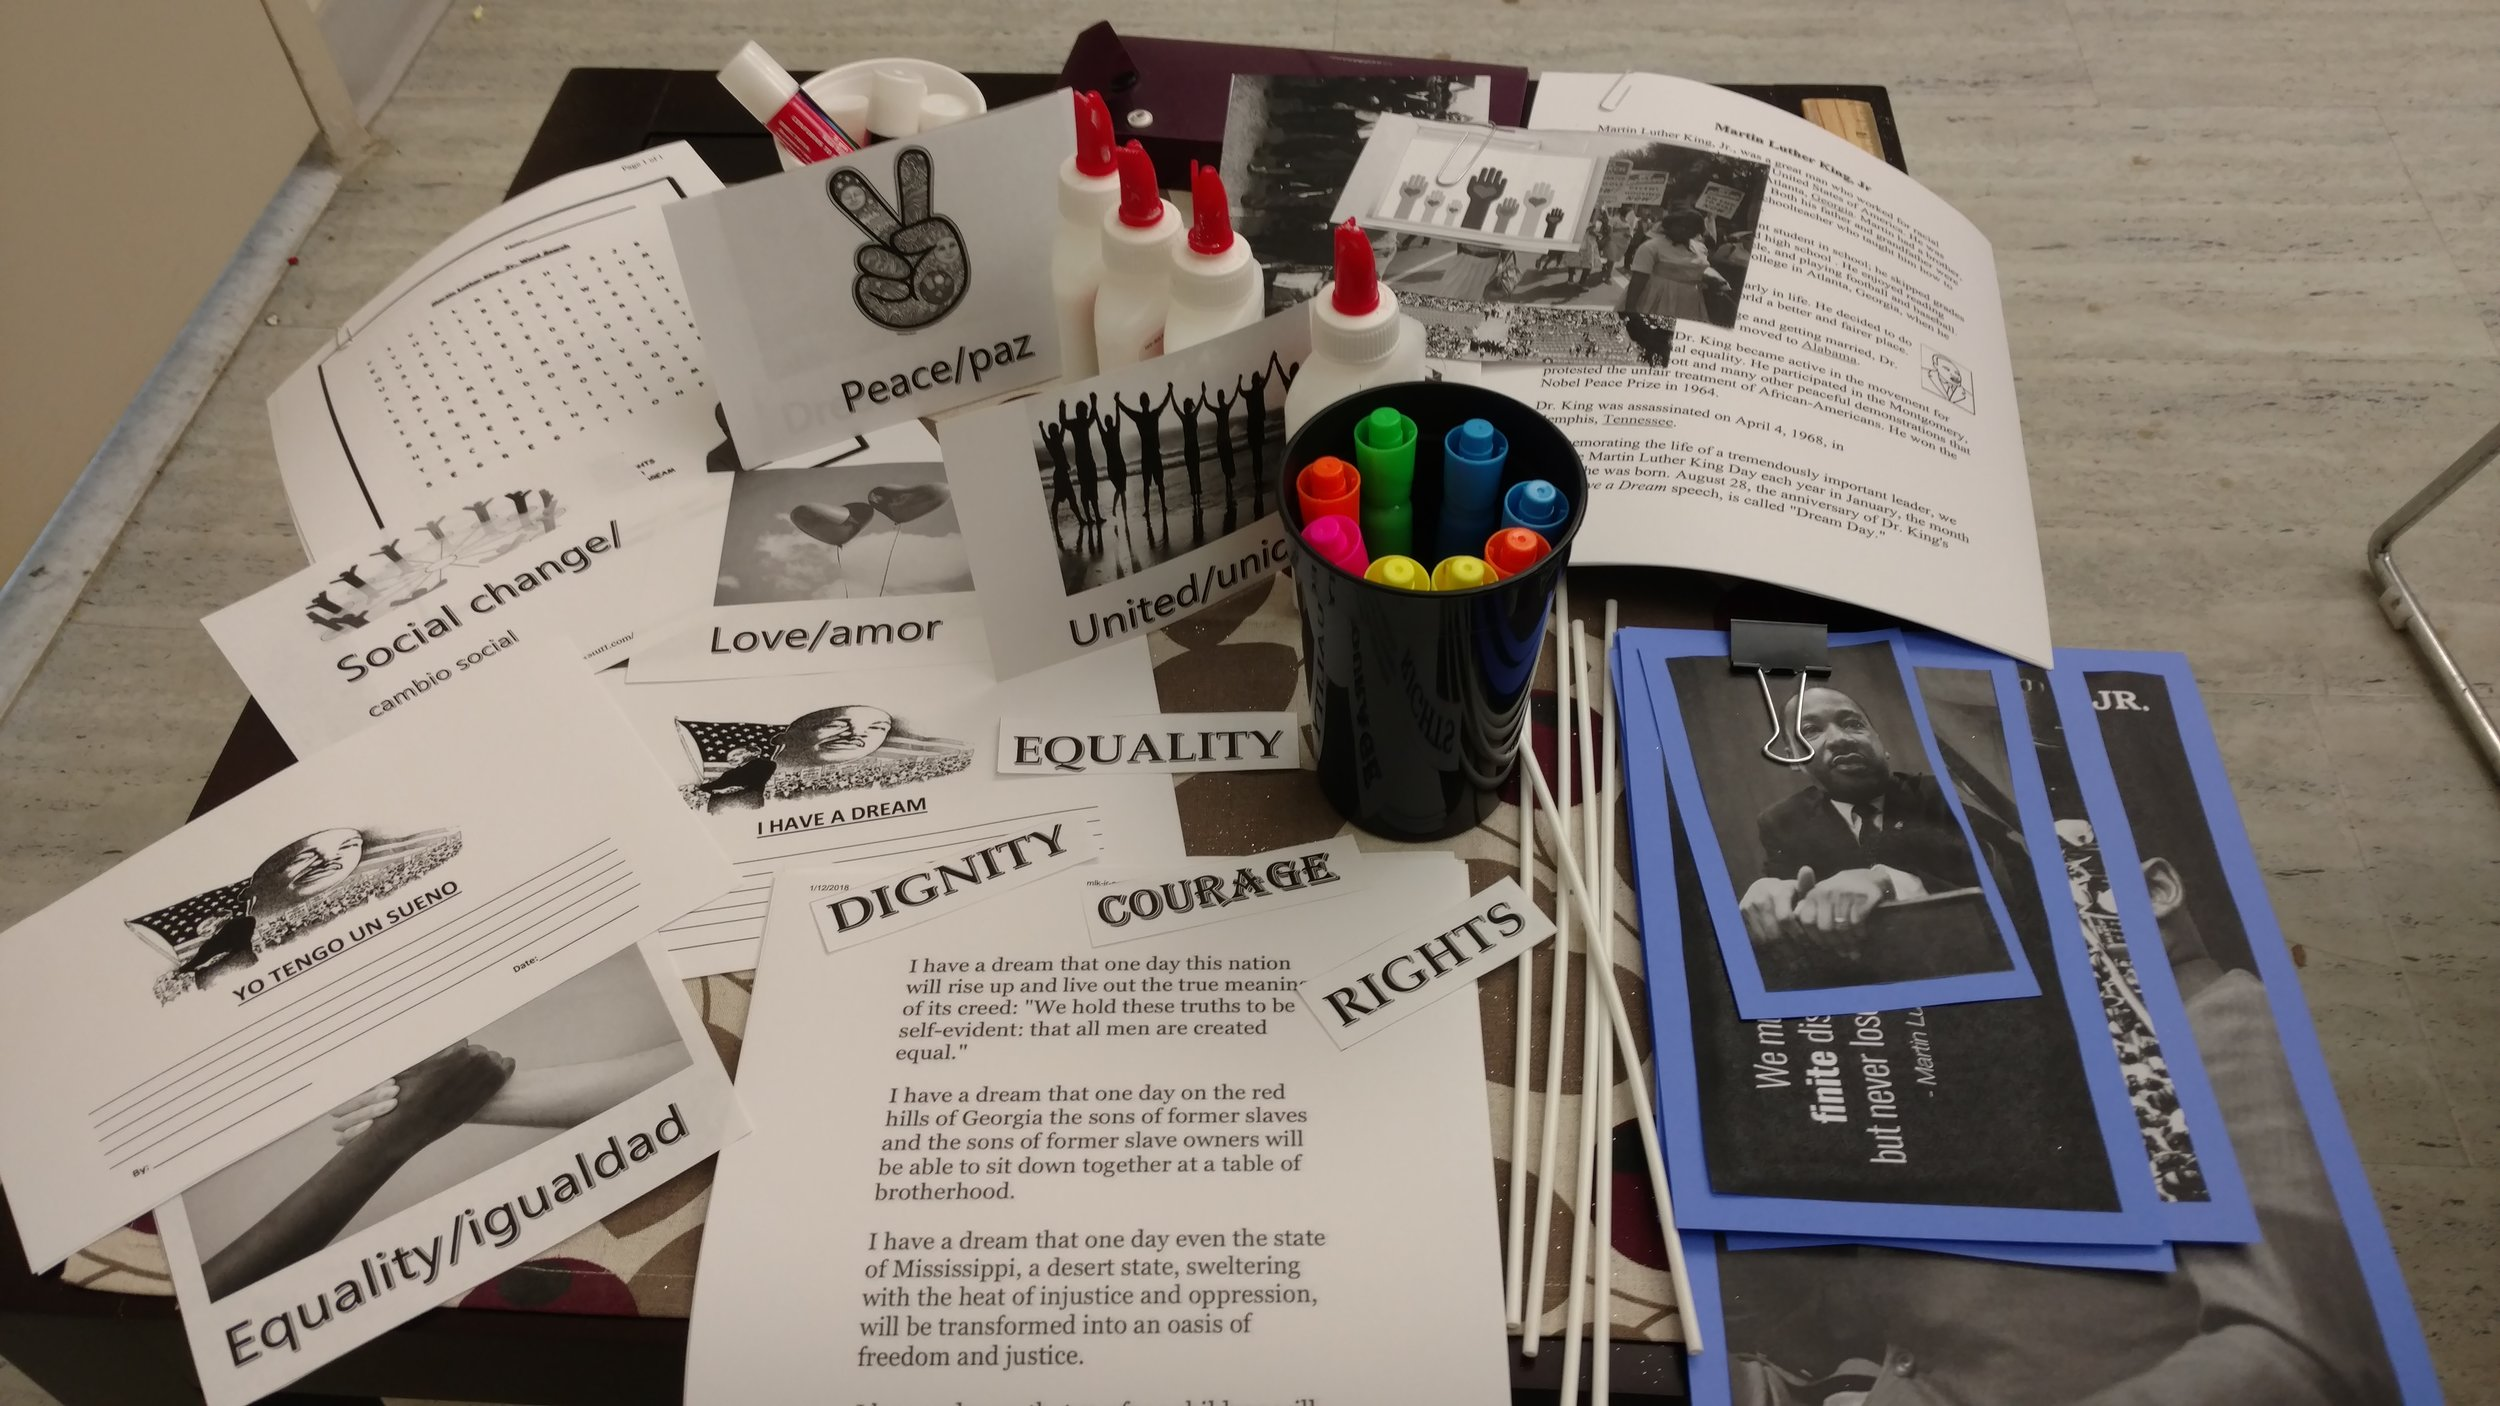 Dr. Martin Luther King Jr. Arts and Crafts at our residence at 162nd street in the Bronx